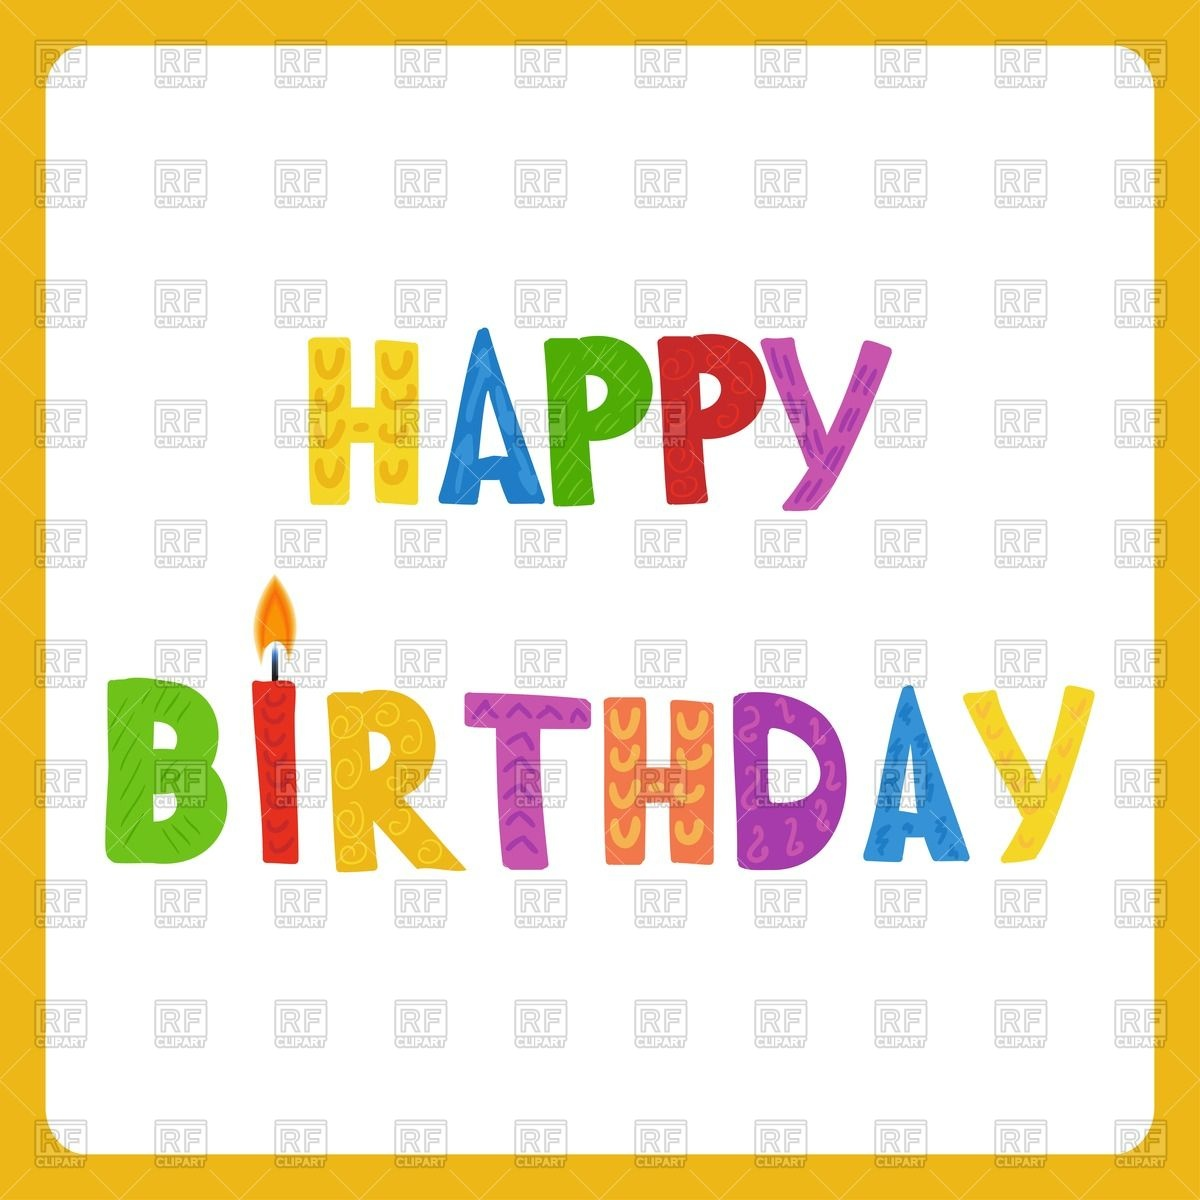 happy birthday word clipart ; happy-birthday-greeting-card-in-yellow-frame-Download-Royalty-free-Vector-File-EPS-116254